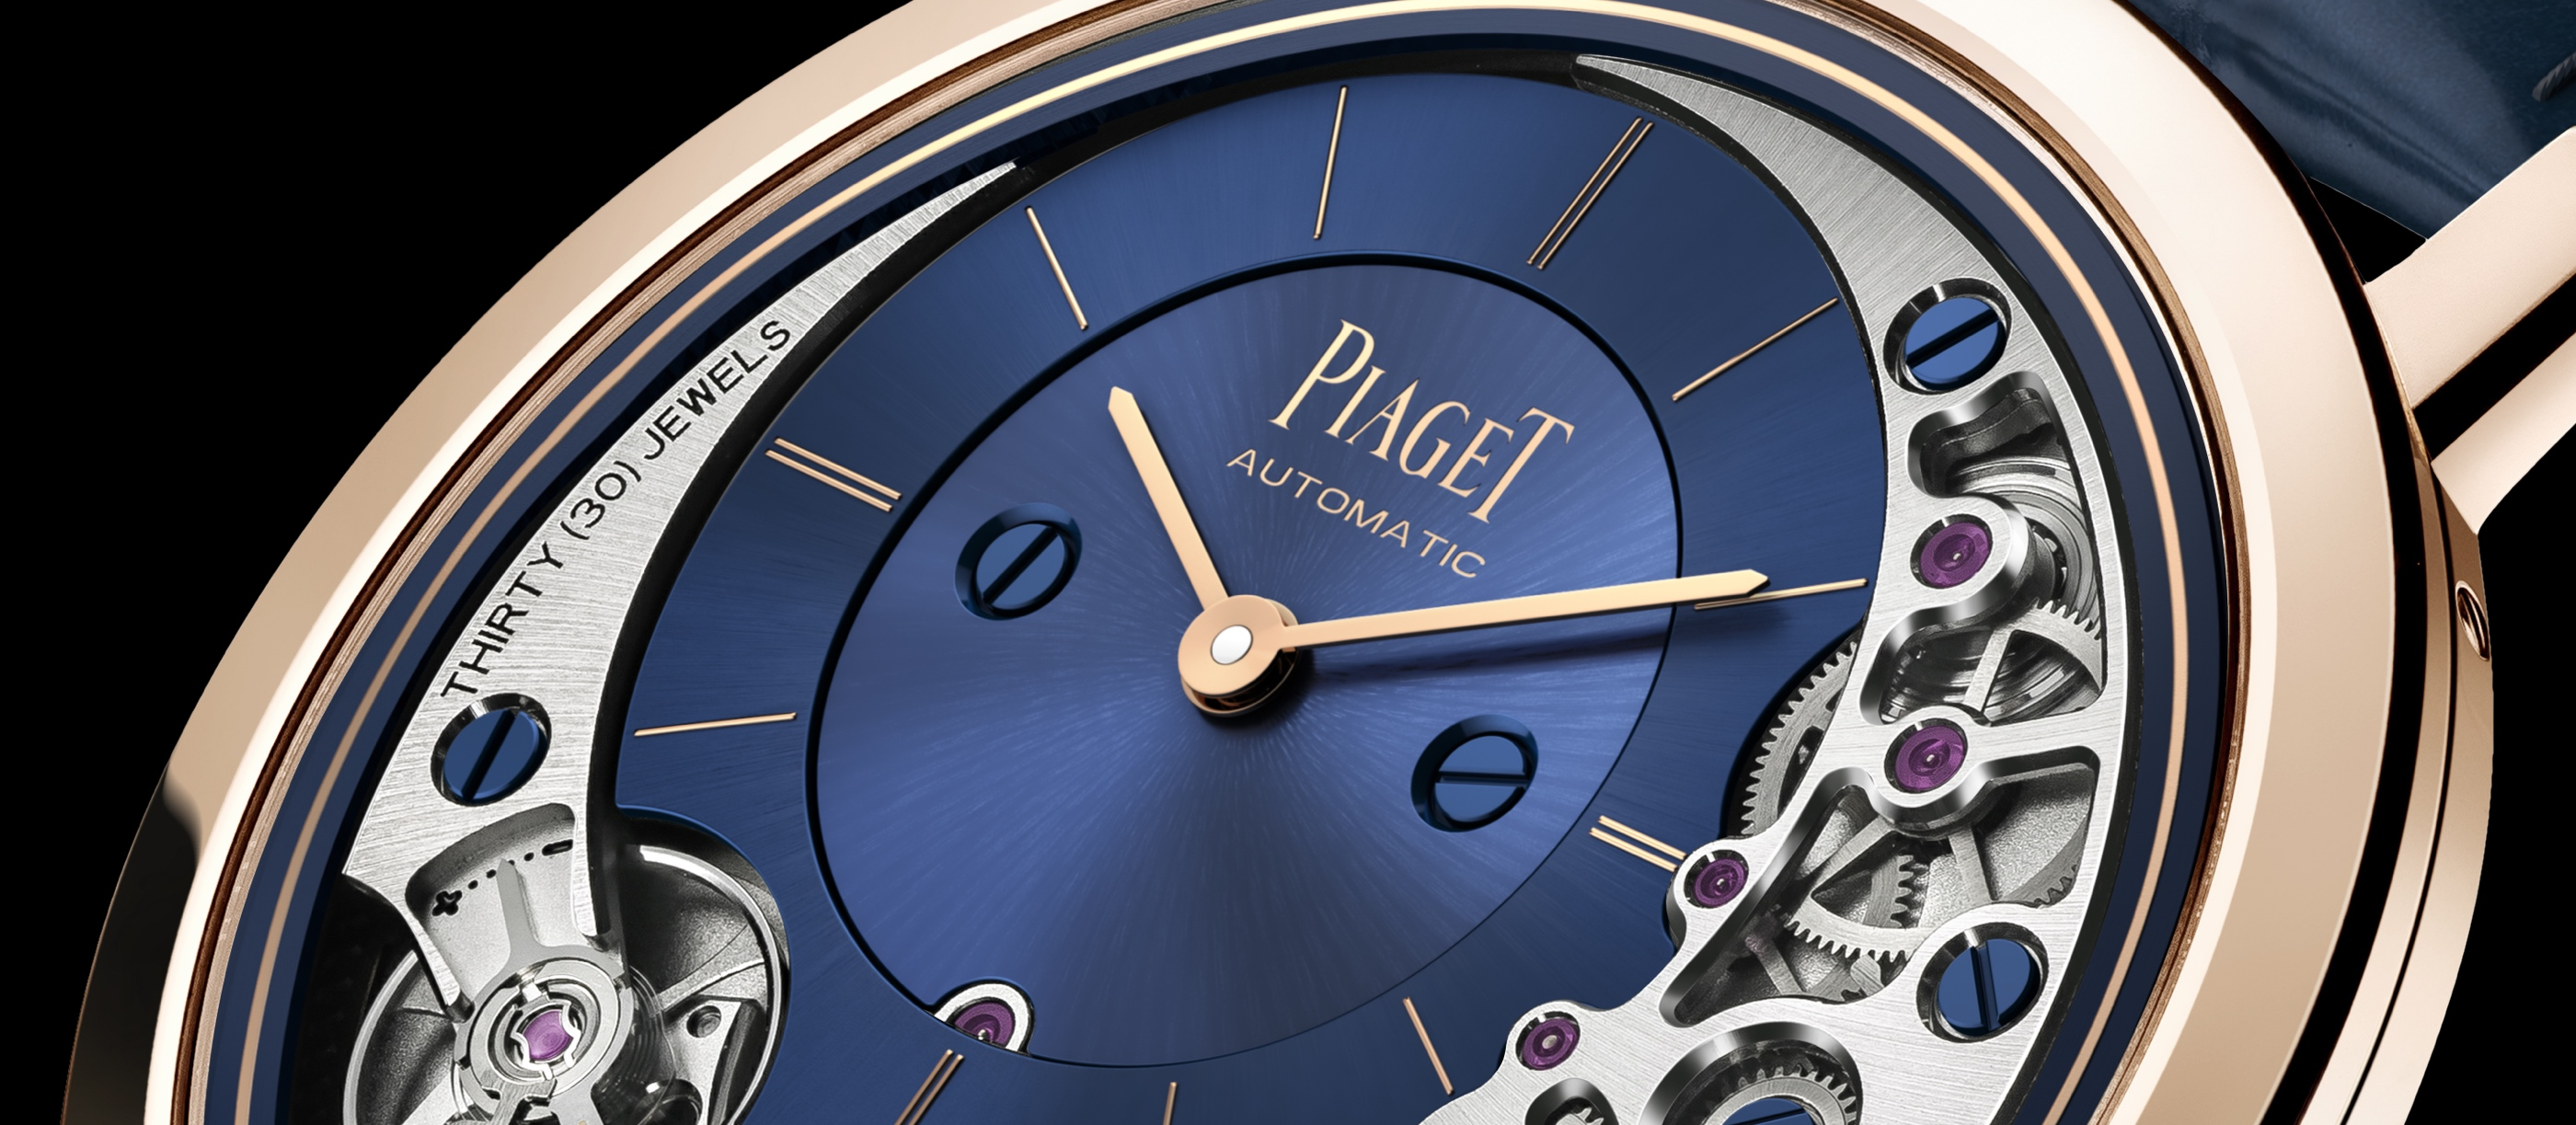 Piaget Altiplano Ultimate Automatic Only Watch 2019 - cover